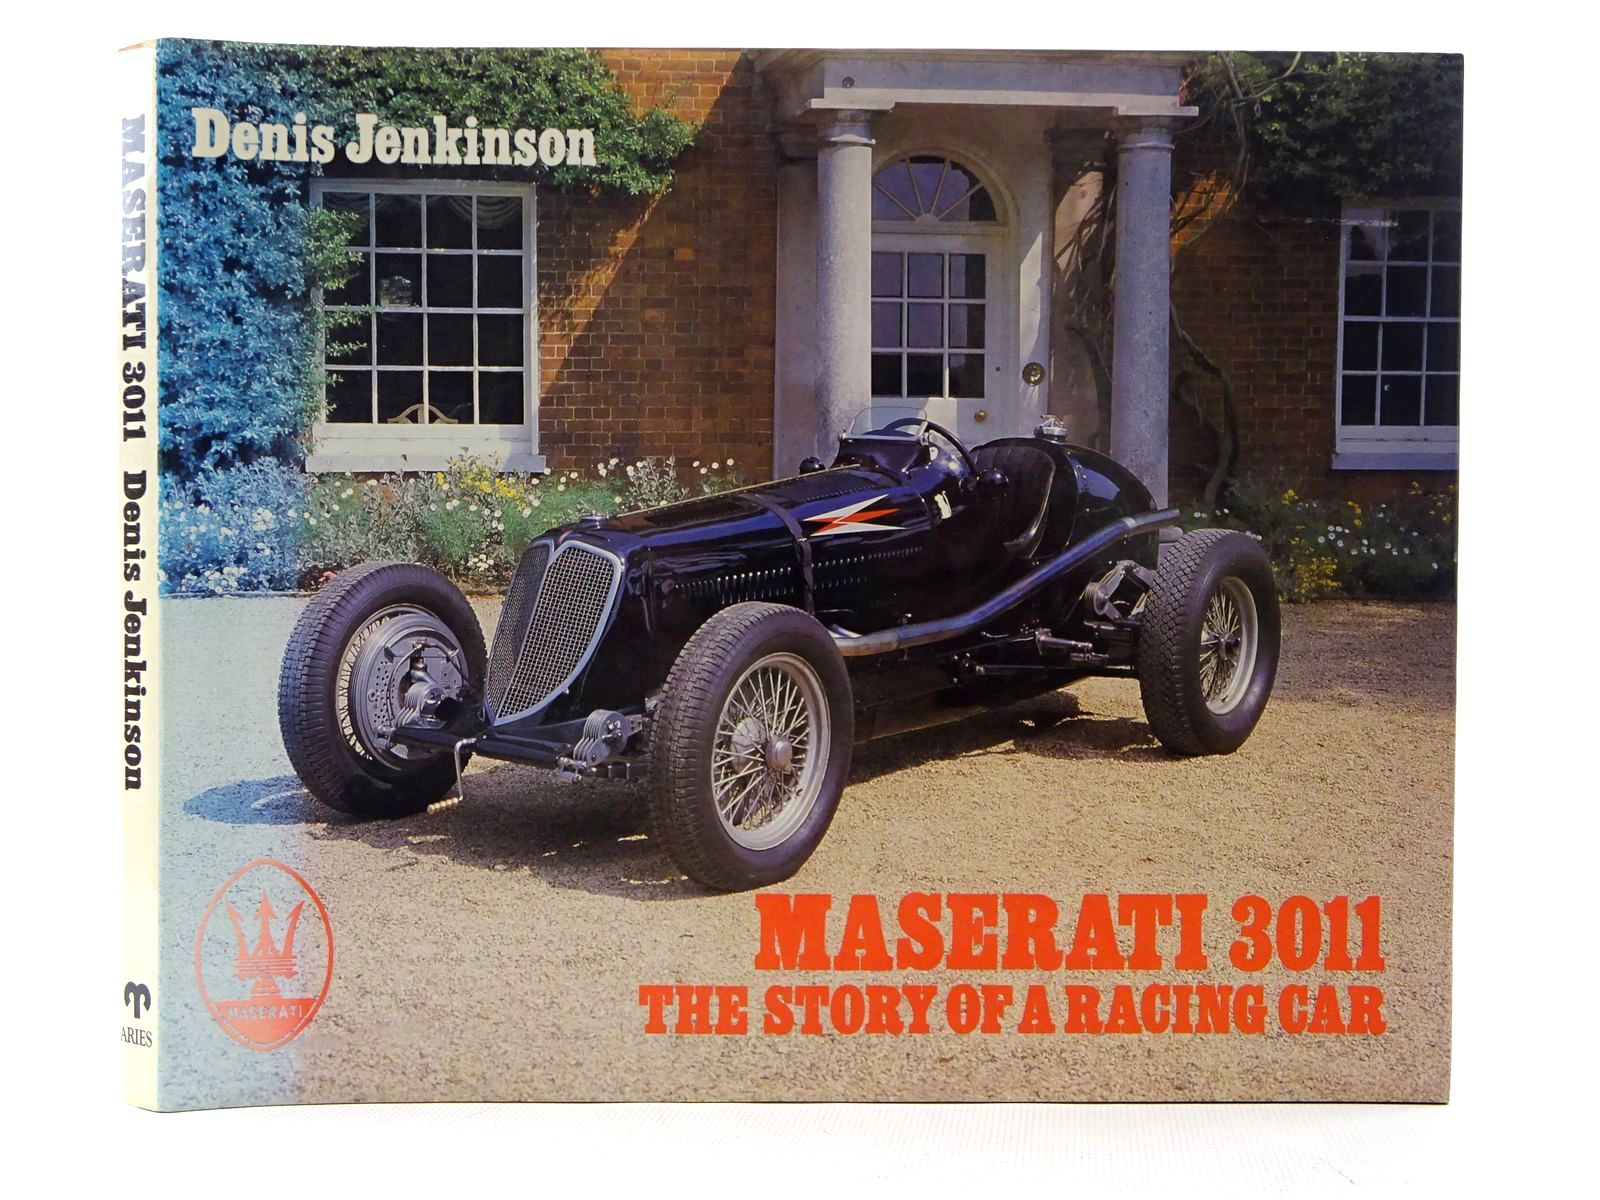 Photo of MASERATI 3011 THE STORY OF A RACING CAR written by Jenkinson, Denis published by Aries Press (STOCK CODE: 1610533)  for sale by Stella & Rose's Books